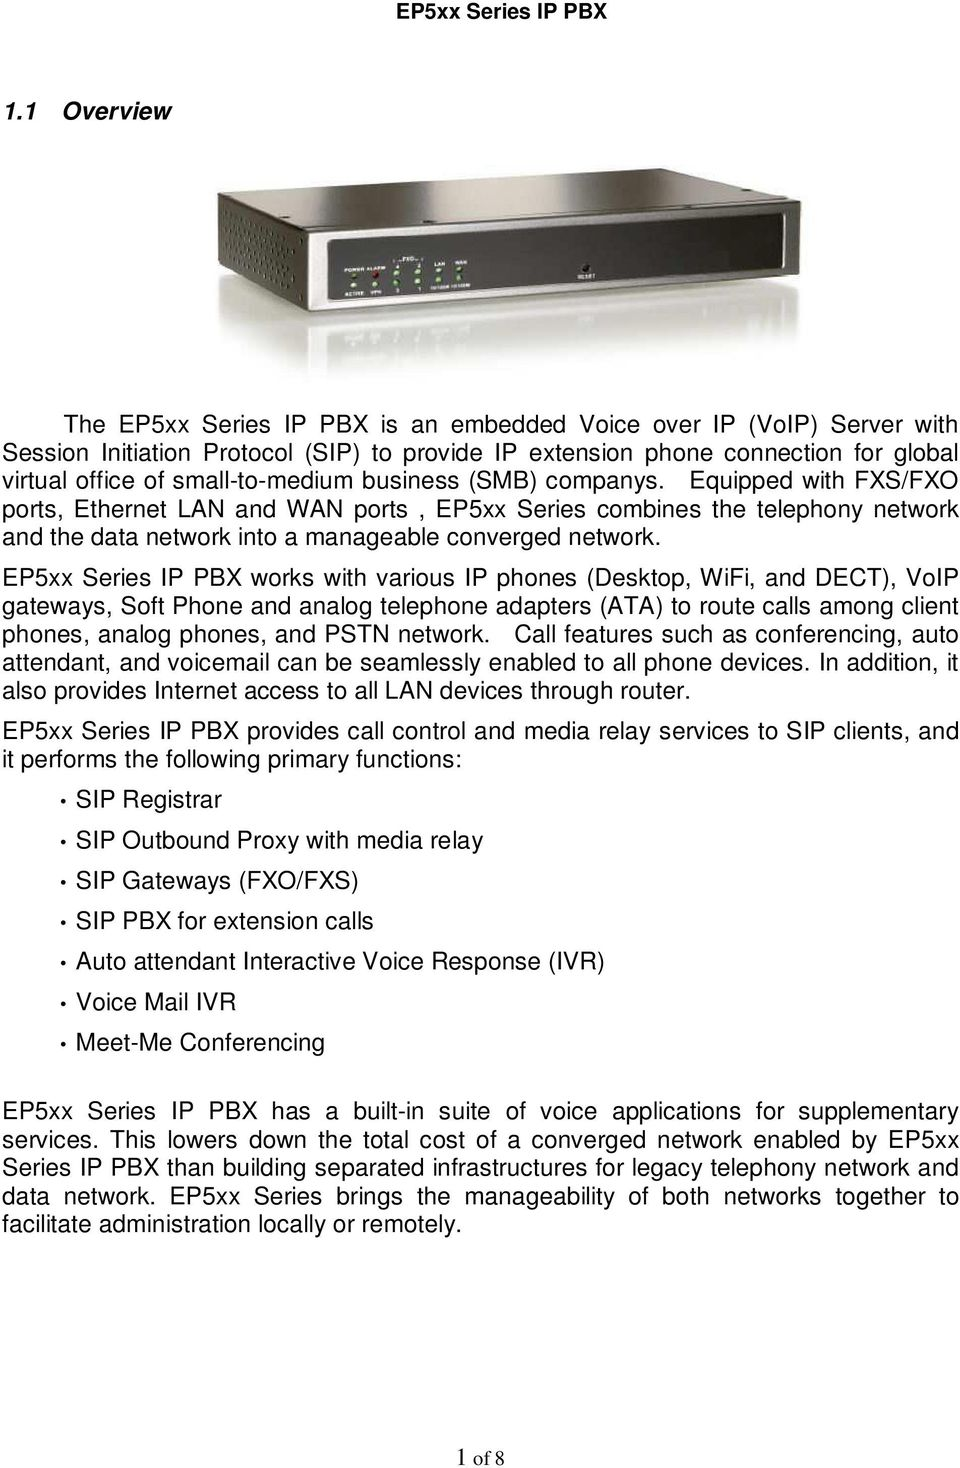 EP5xx Series IP PBX works with various IP phones (Desktop, WiFi, and DECT), VoIP gateways, Soft Phone and analog telephone adapters (ATA) to route calls among client phones, analog phones, and PSTN